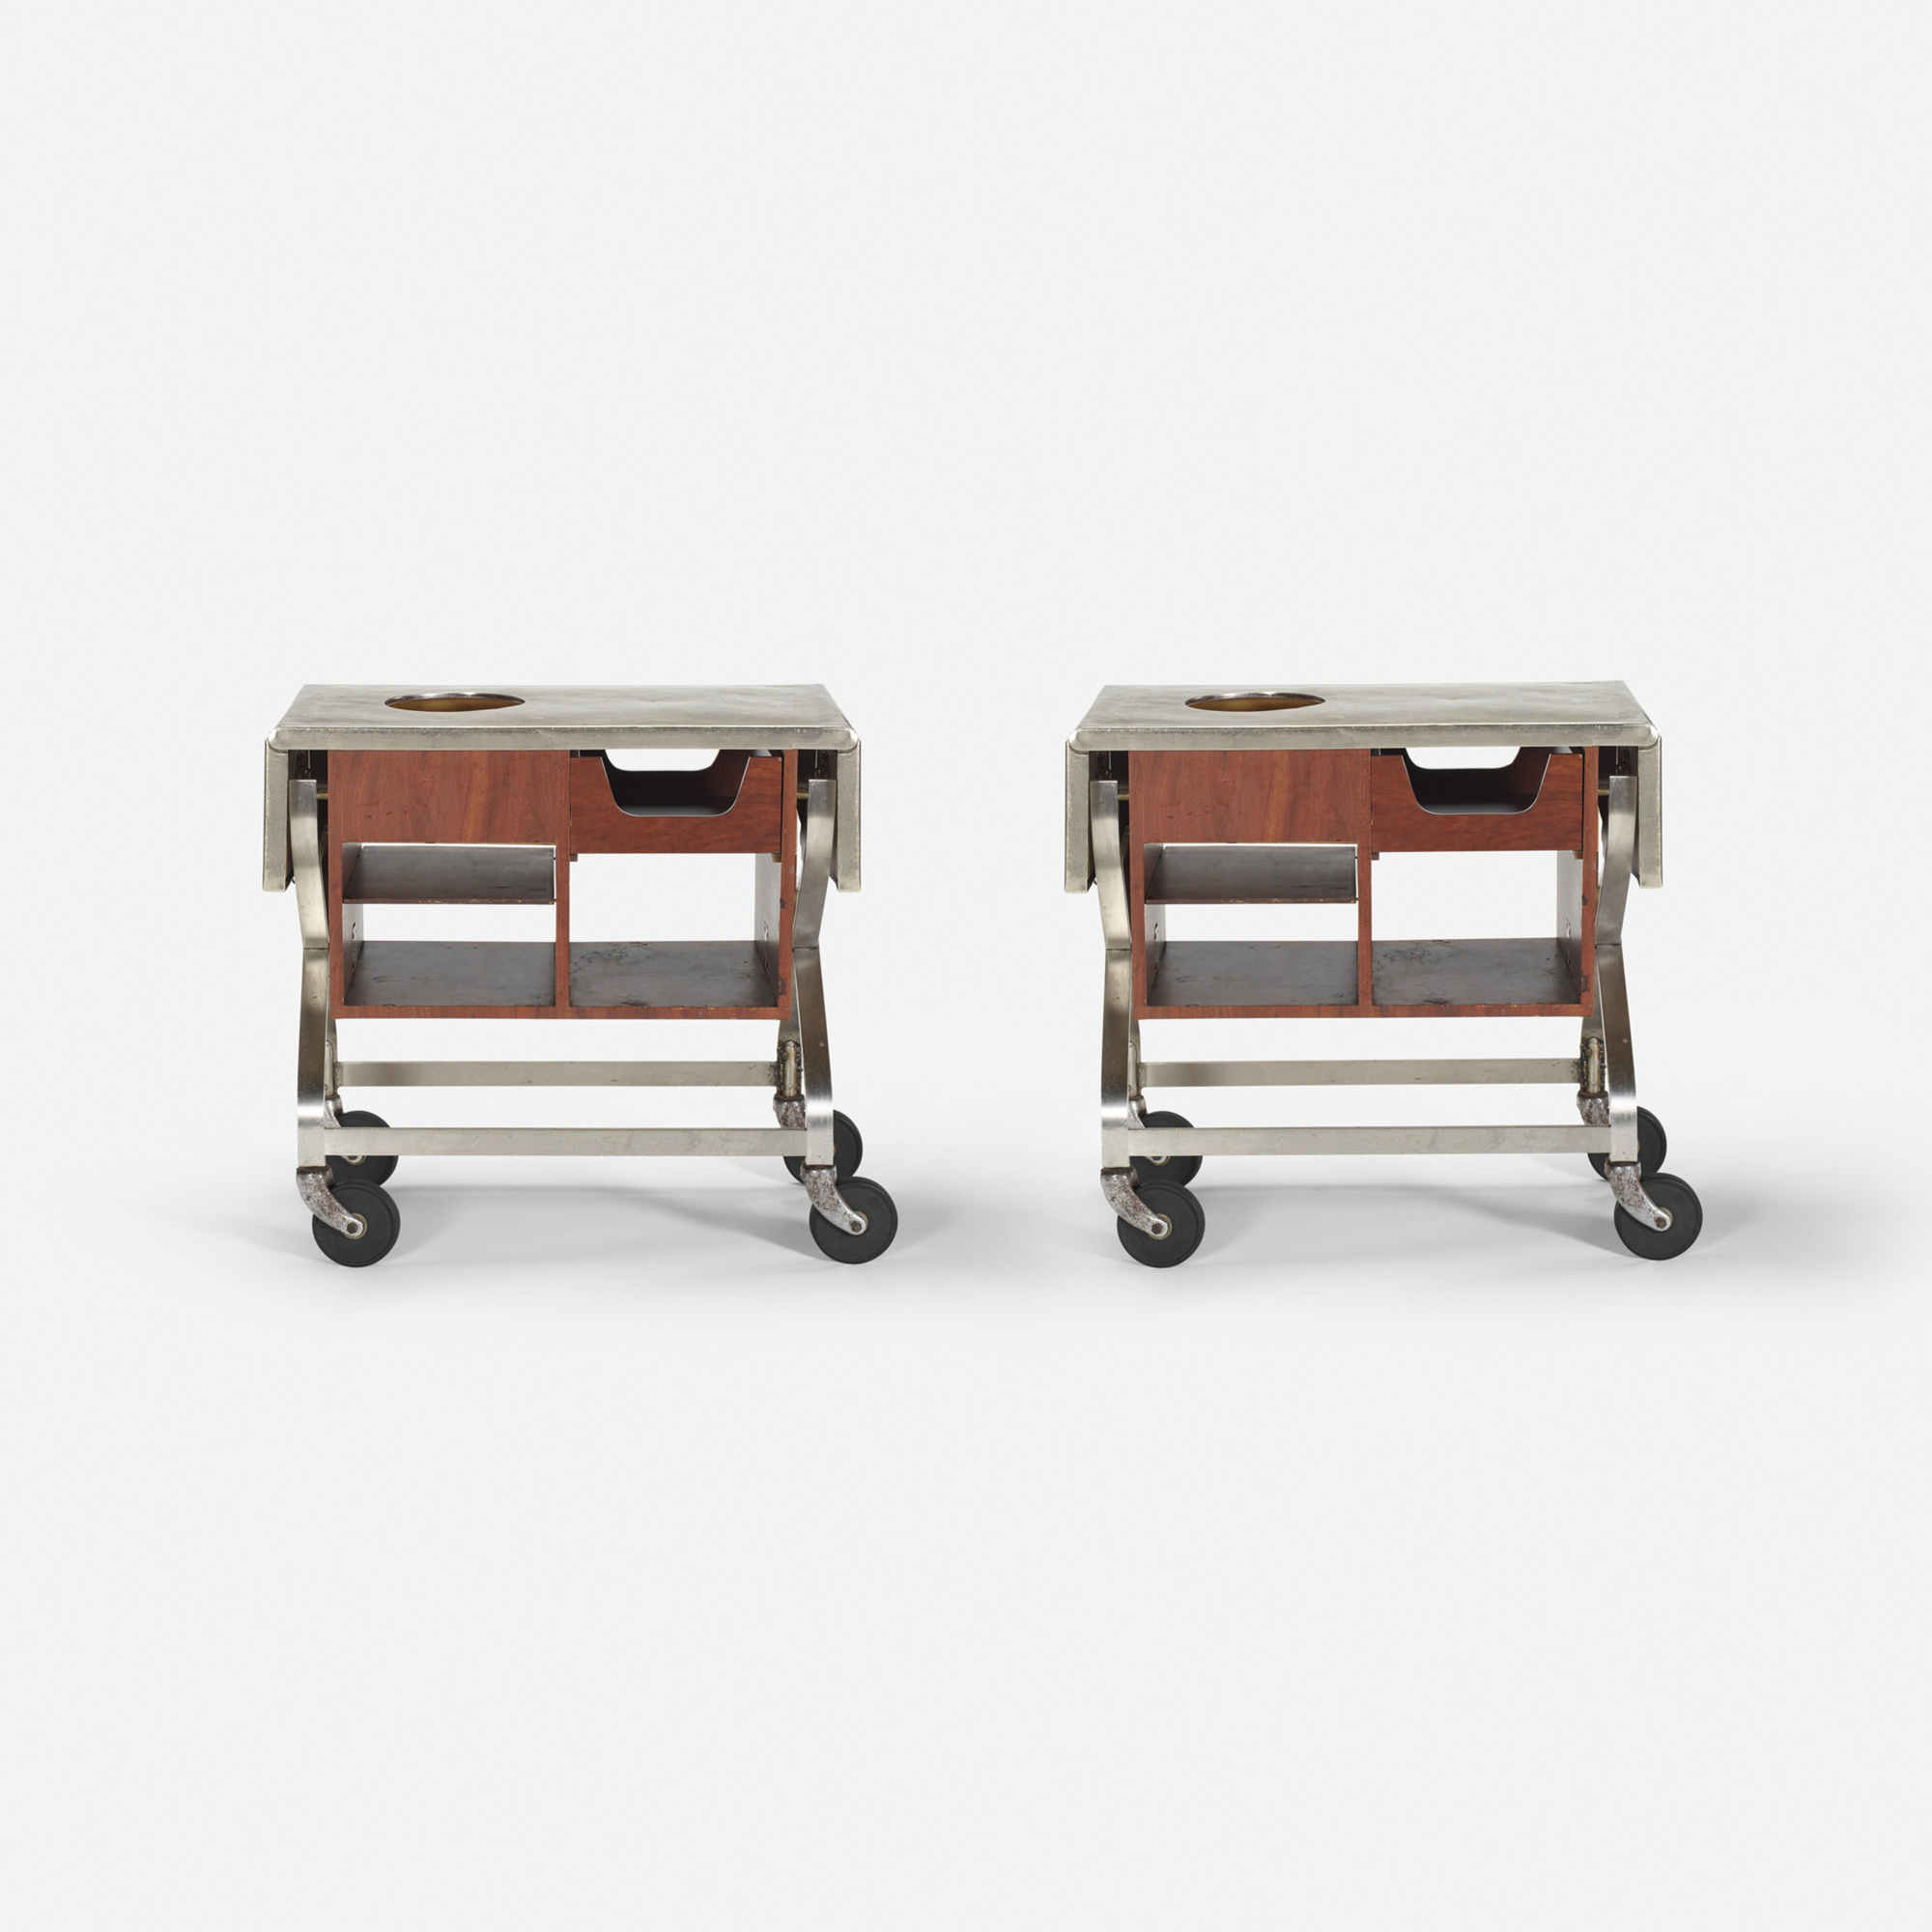 430: Garth and Ada Louise Huxtable / Serving carts from The Four Seasons, pair (1 of 1)